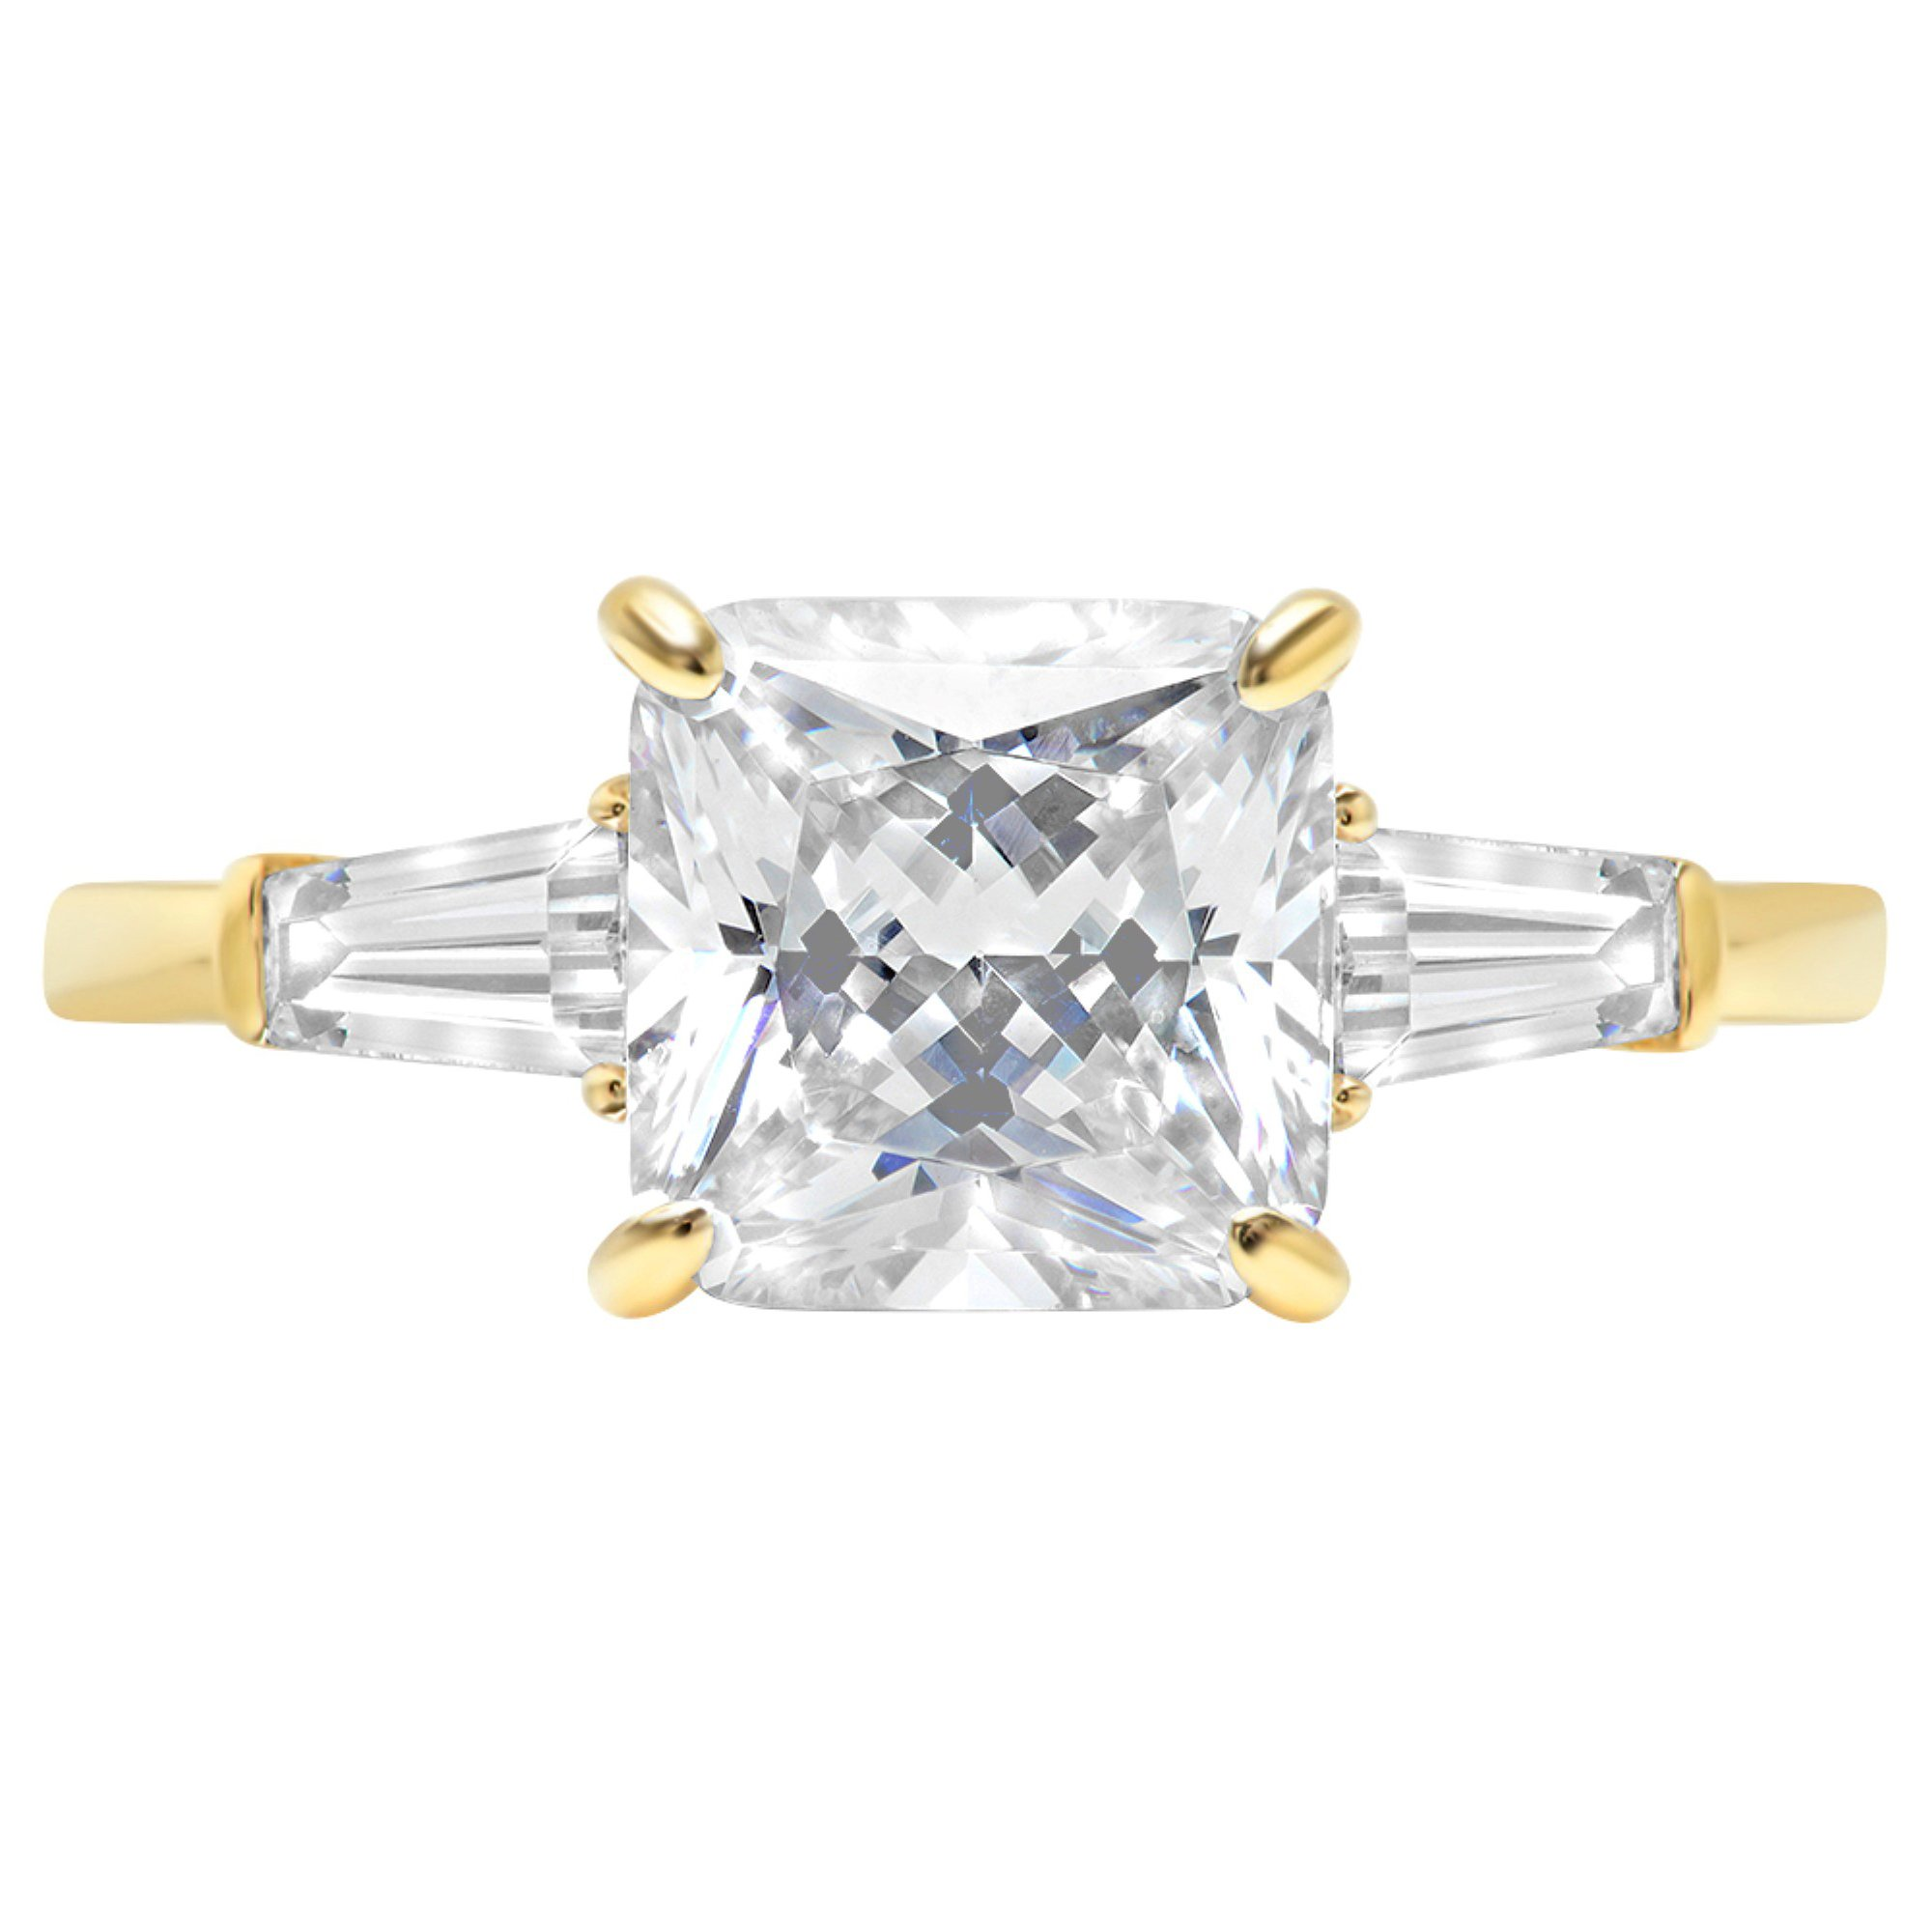 Asscher Baguette 3-Stone Classic Solitaire Designer Wedding Bridal Statement Anniversary Engagement Promise Ring 14k Yellow Gold, 3.7ct, 10 by Clara Pucci